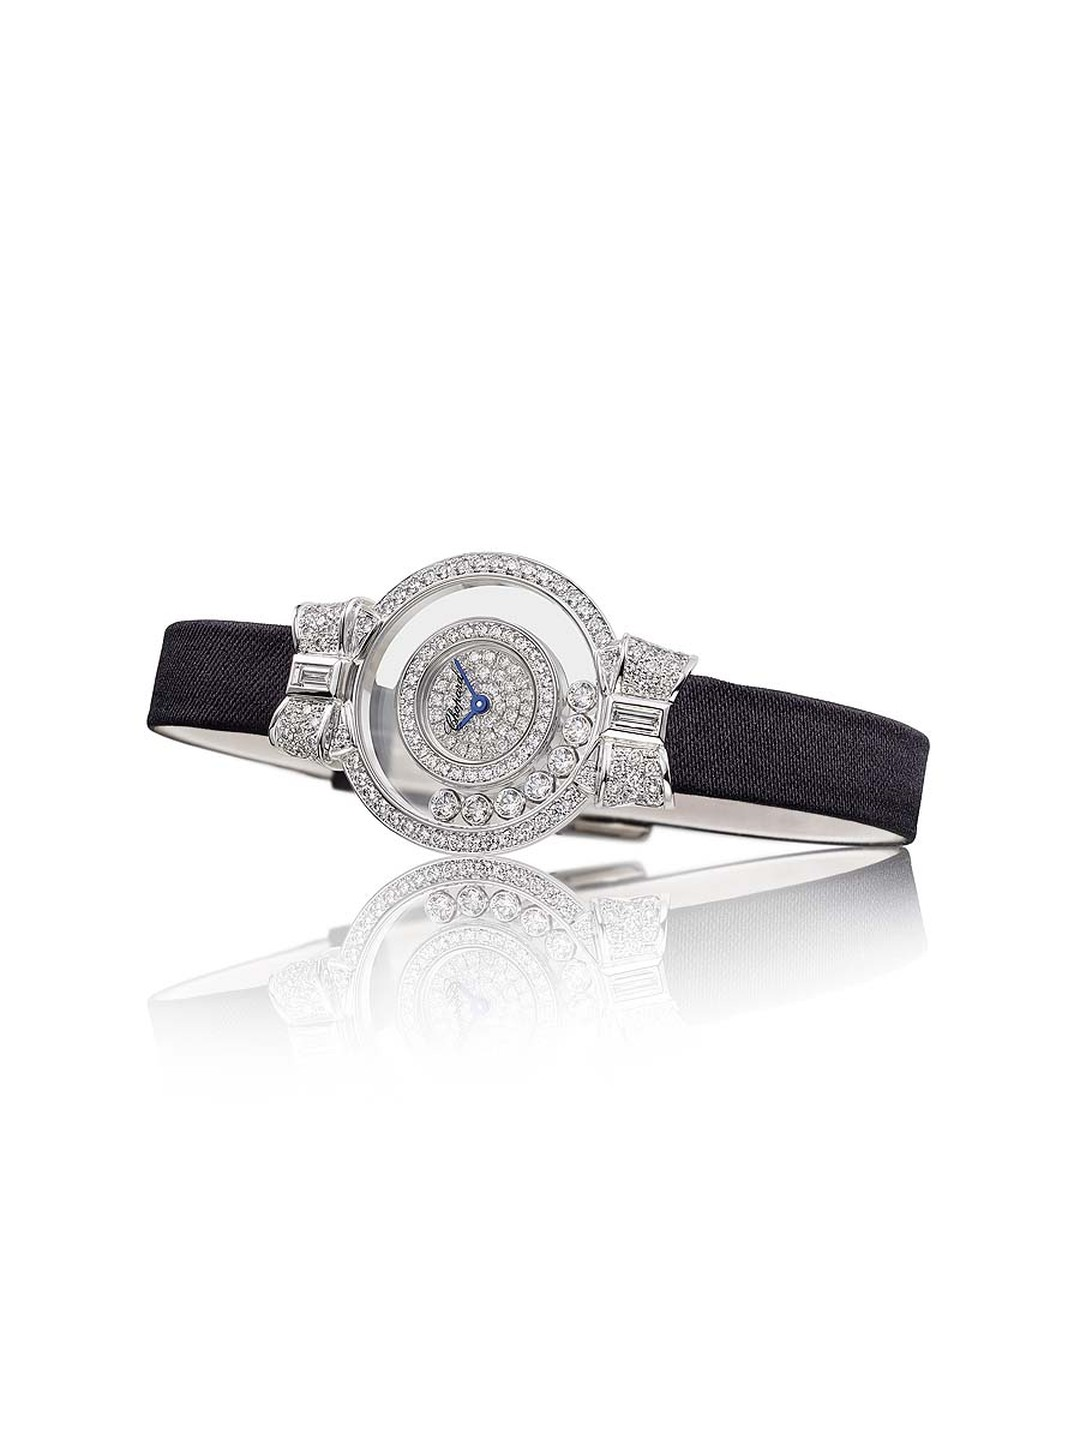 ChopardDianaFilmjewels004.jpg